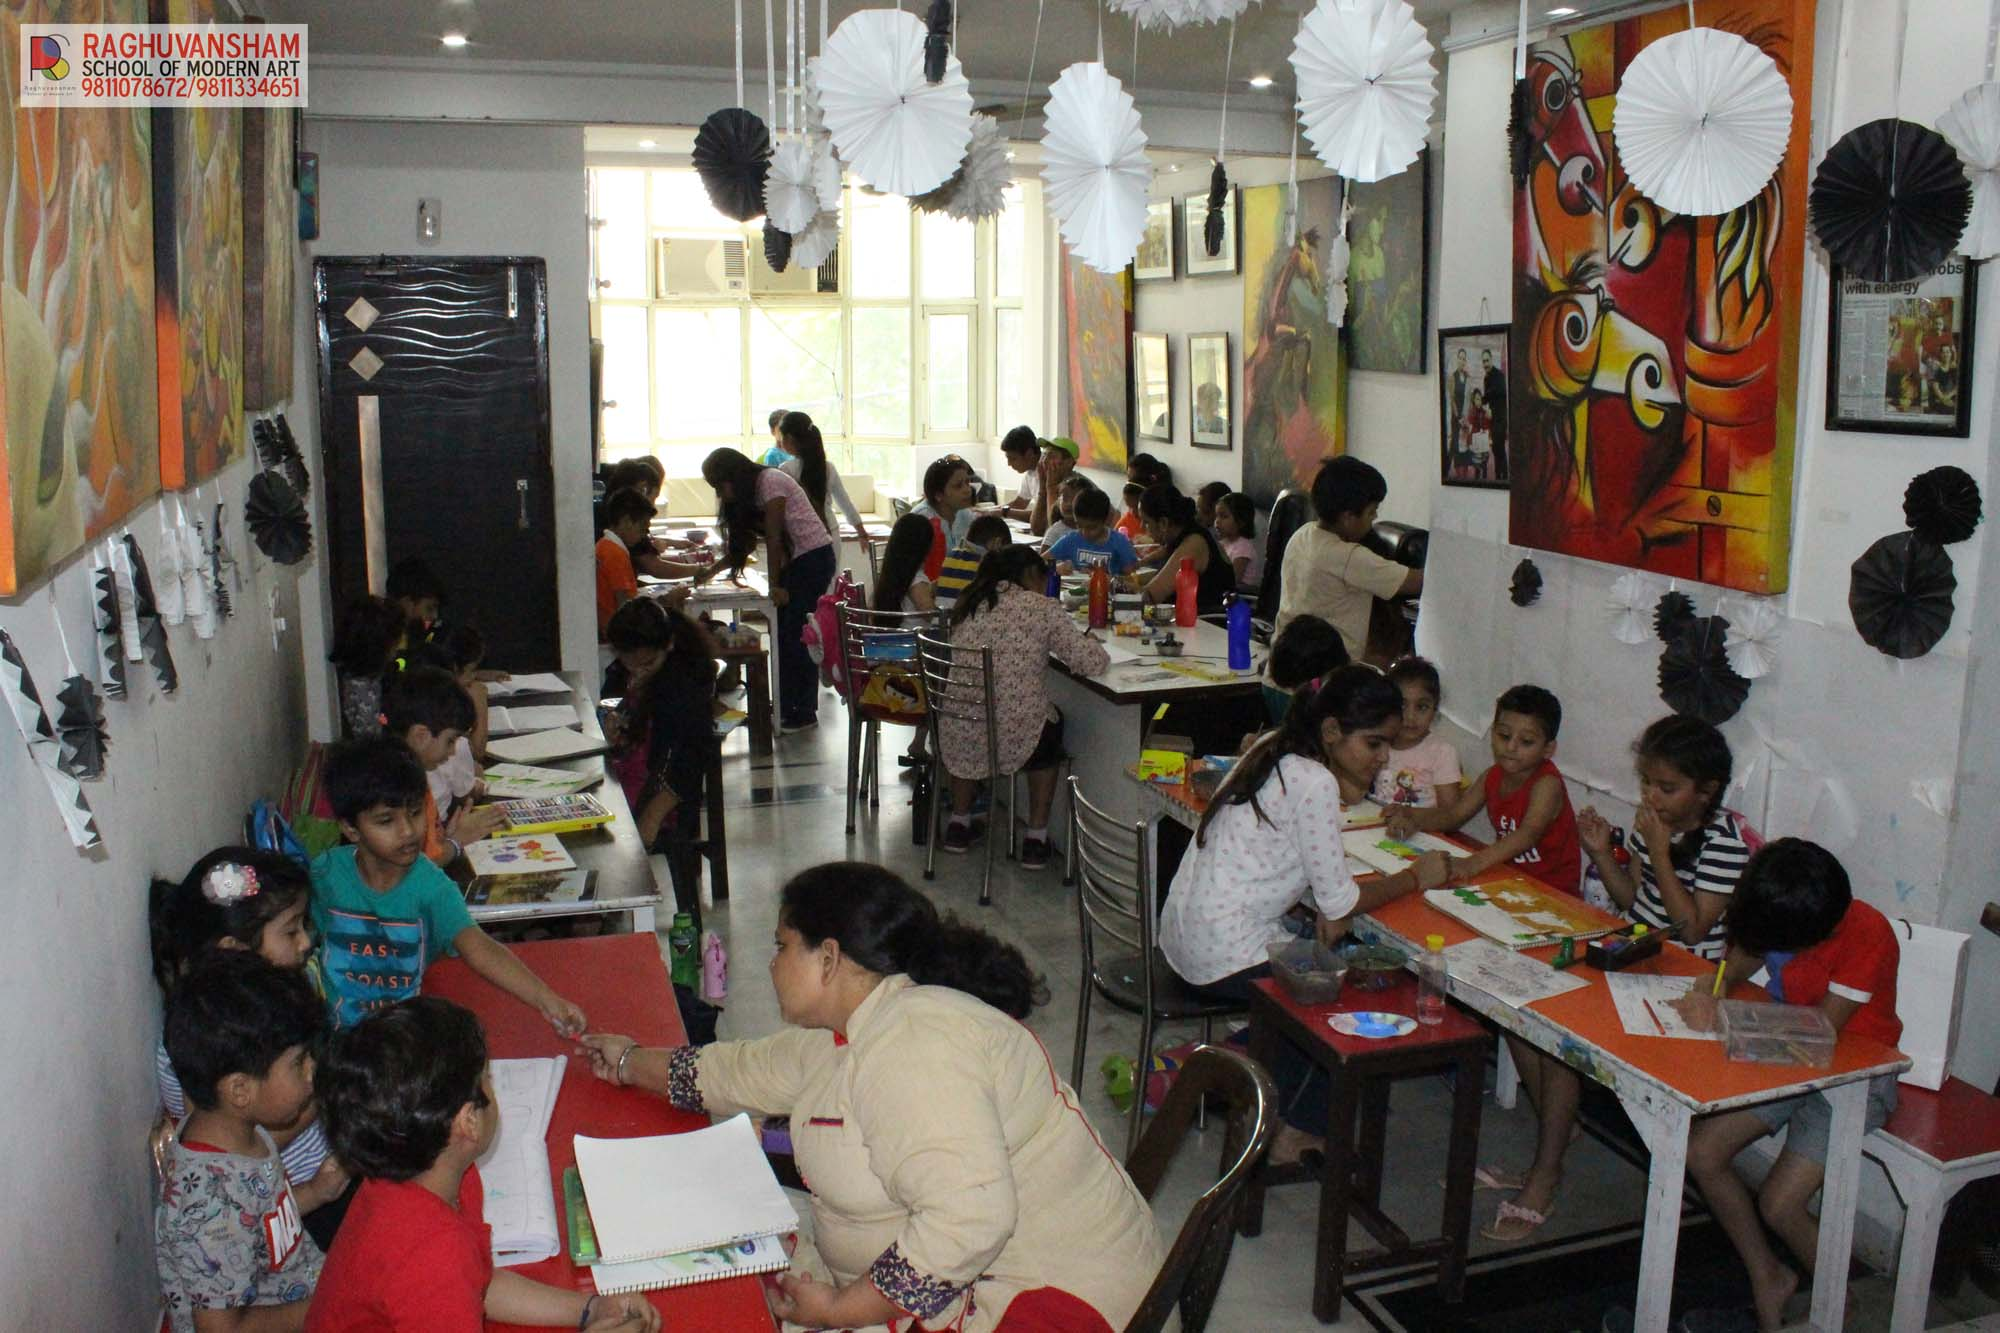 painting for kids by raghuvansham in rohini sector